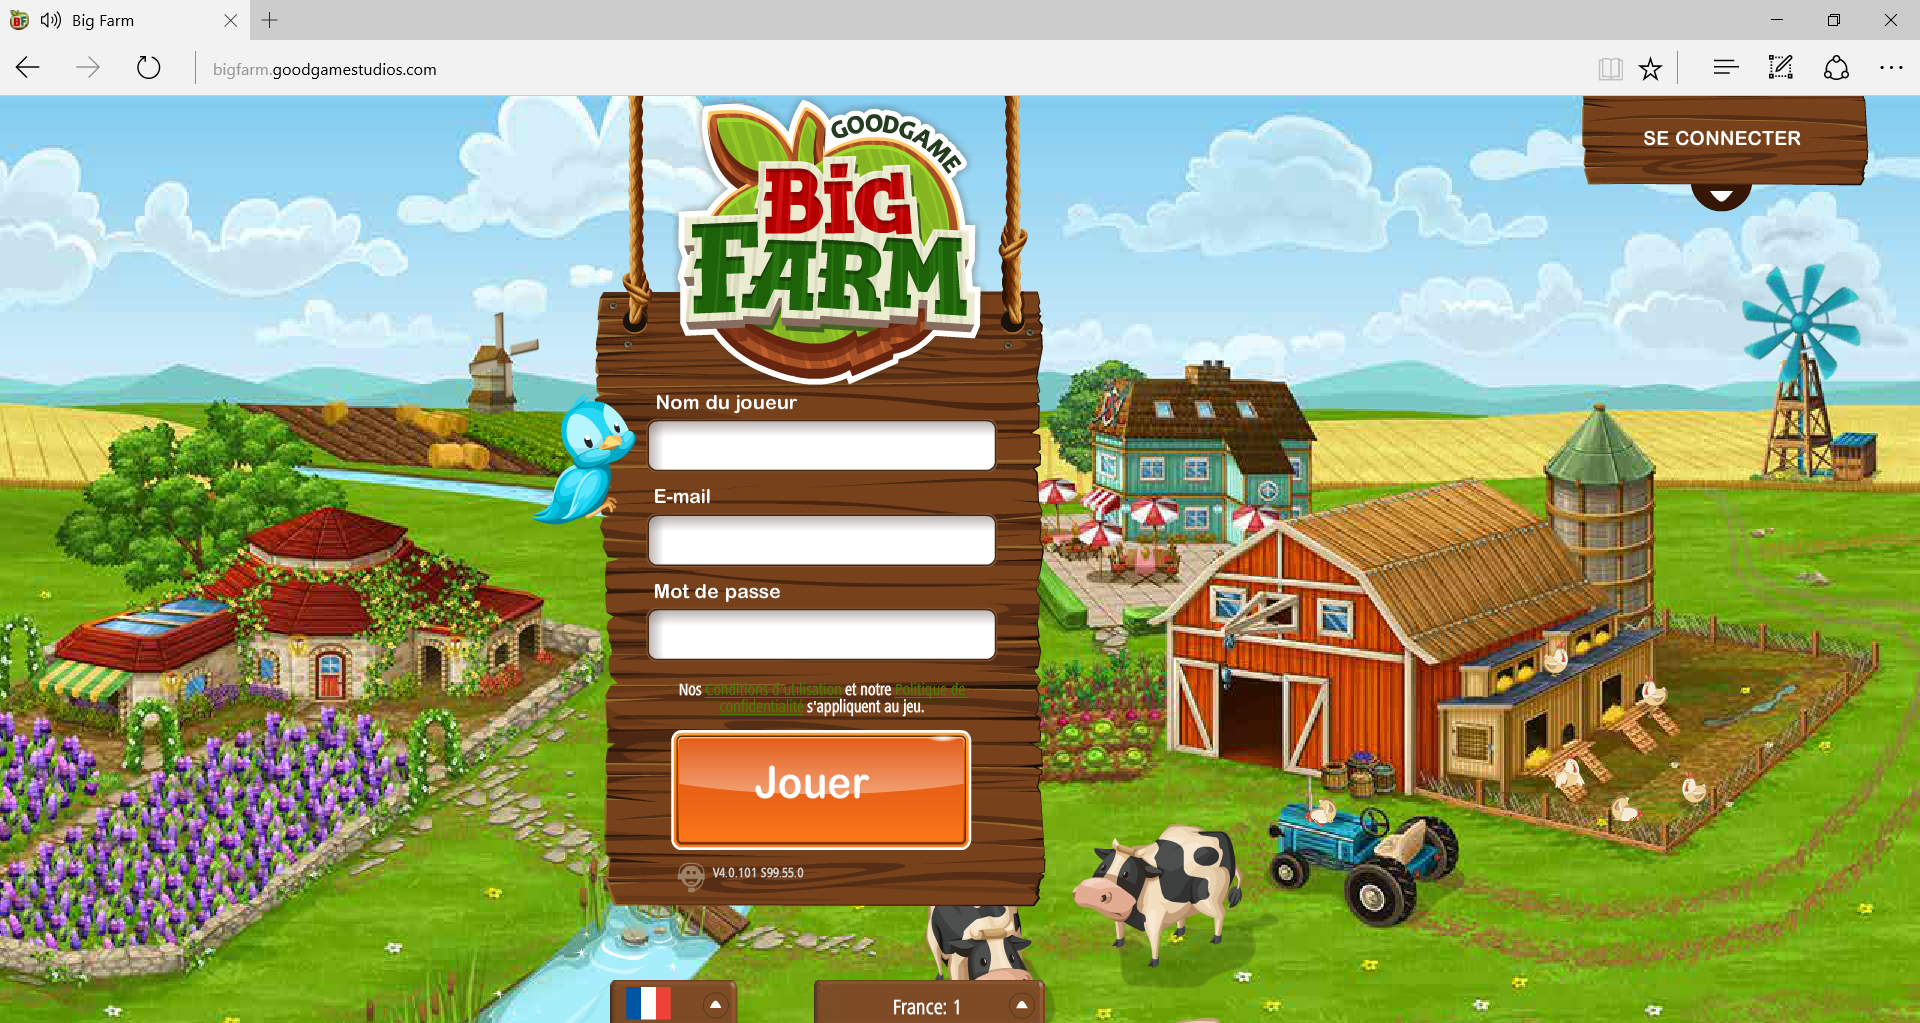 Lp.bigfarm.goodgamestudios.com Pop-ups